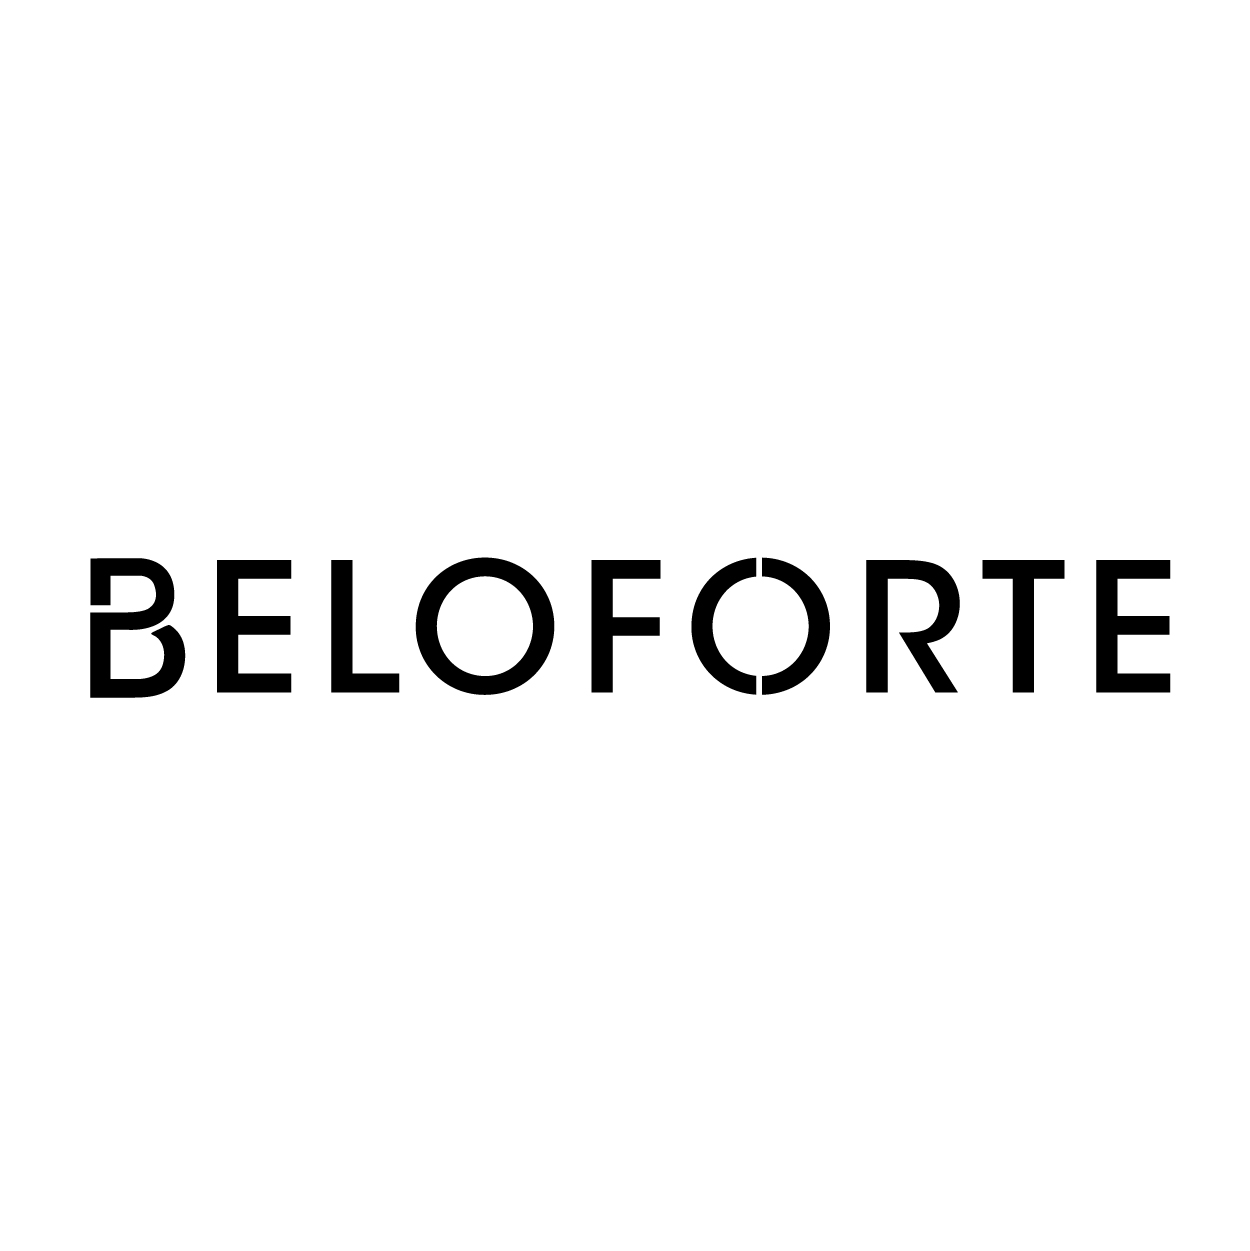 BELOFORTE brand development